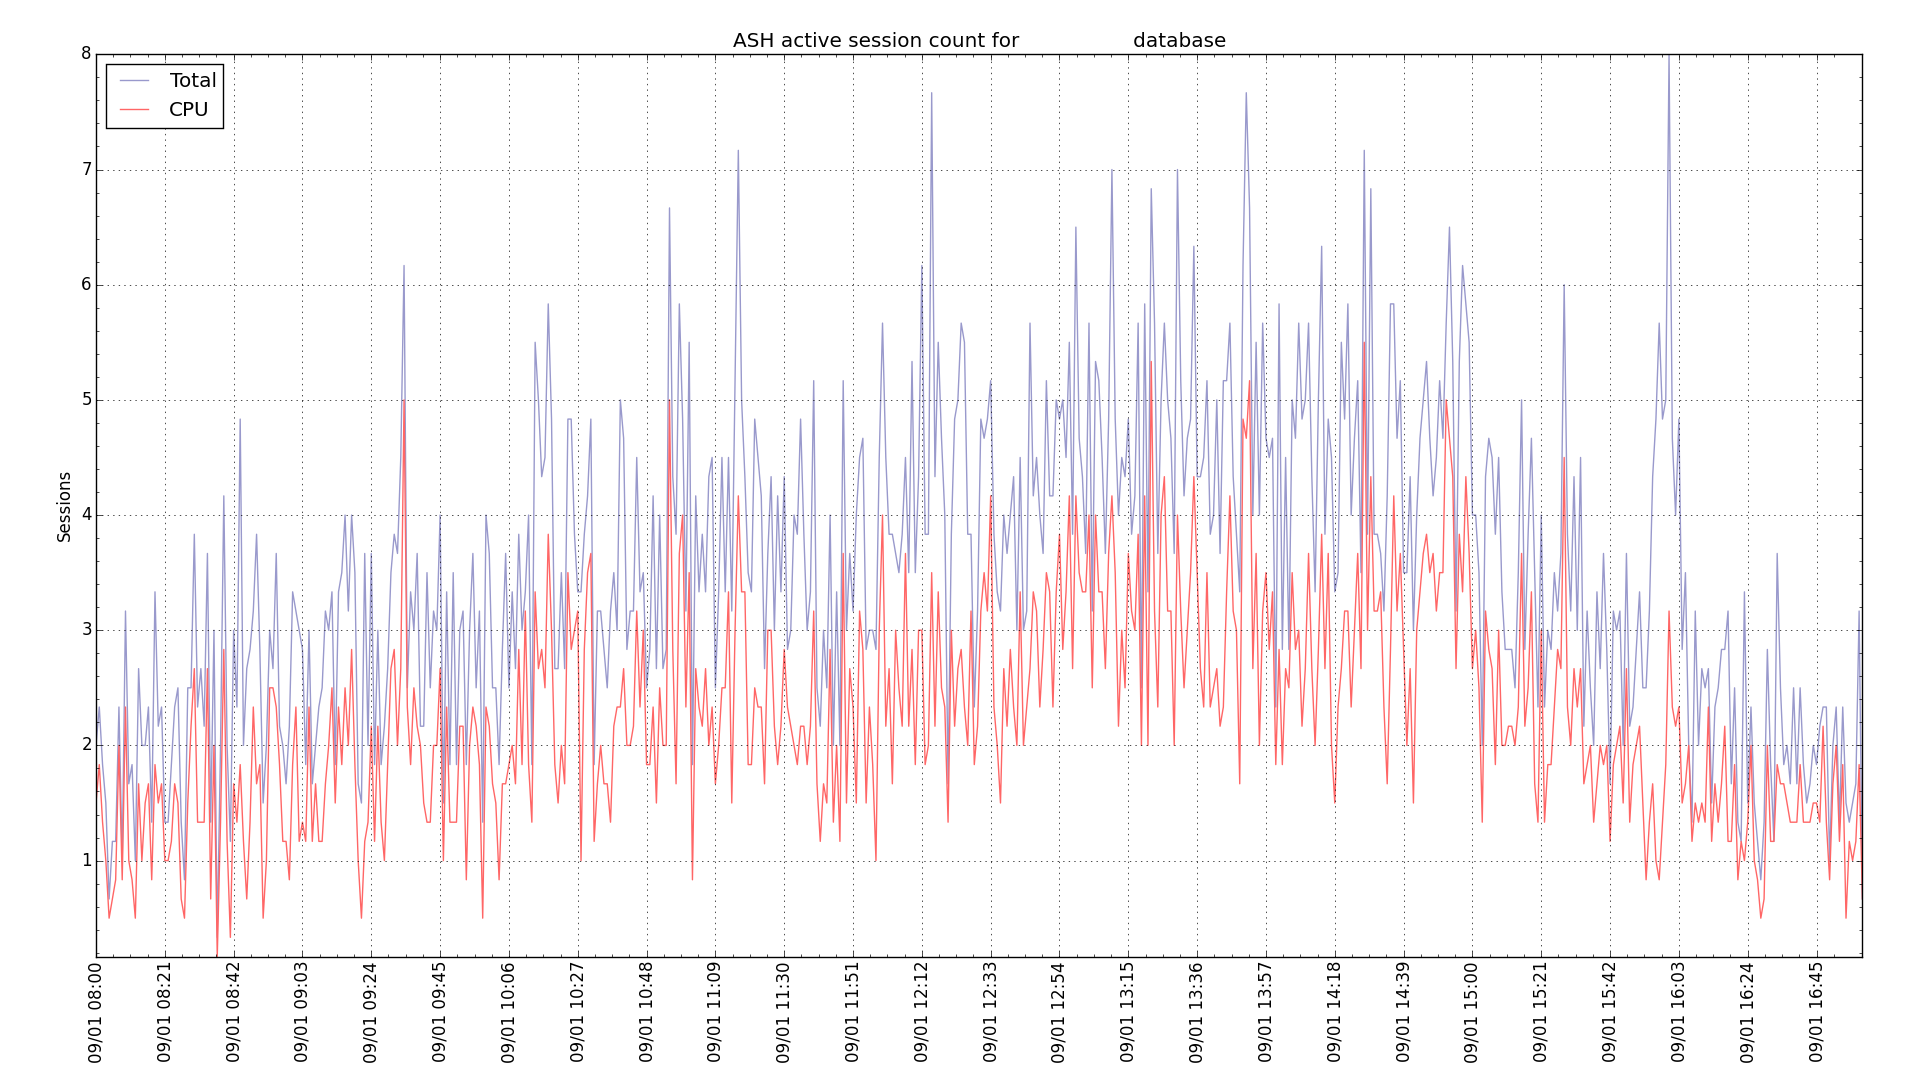 ash_active_session_count_today